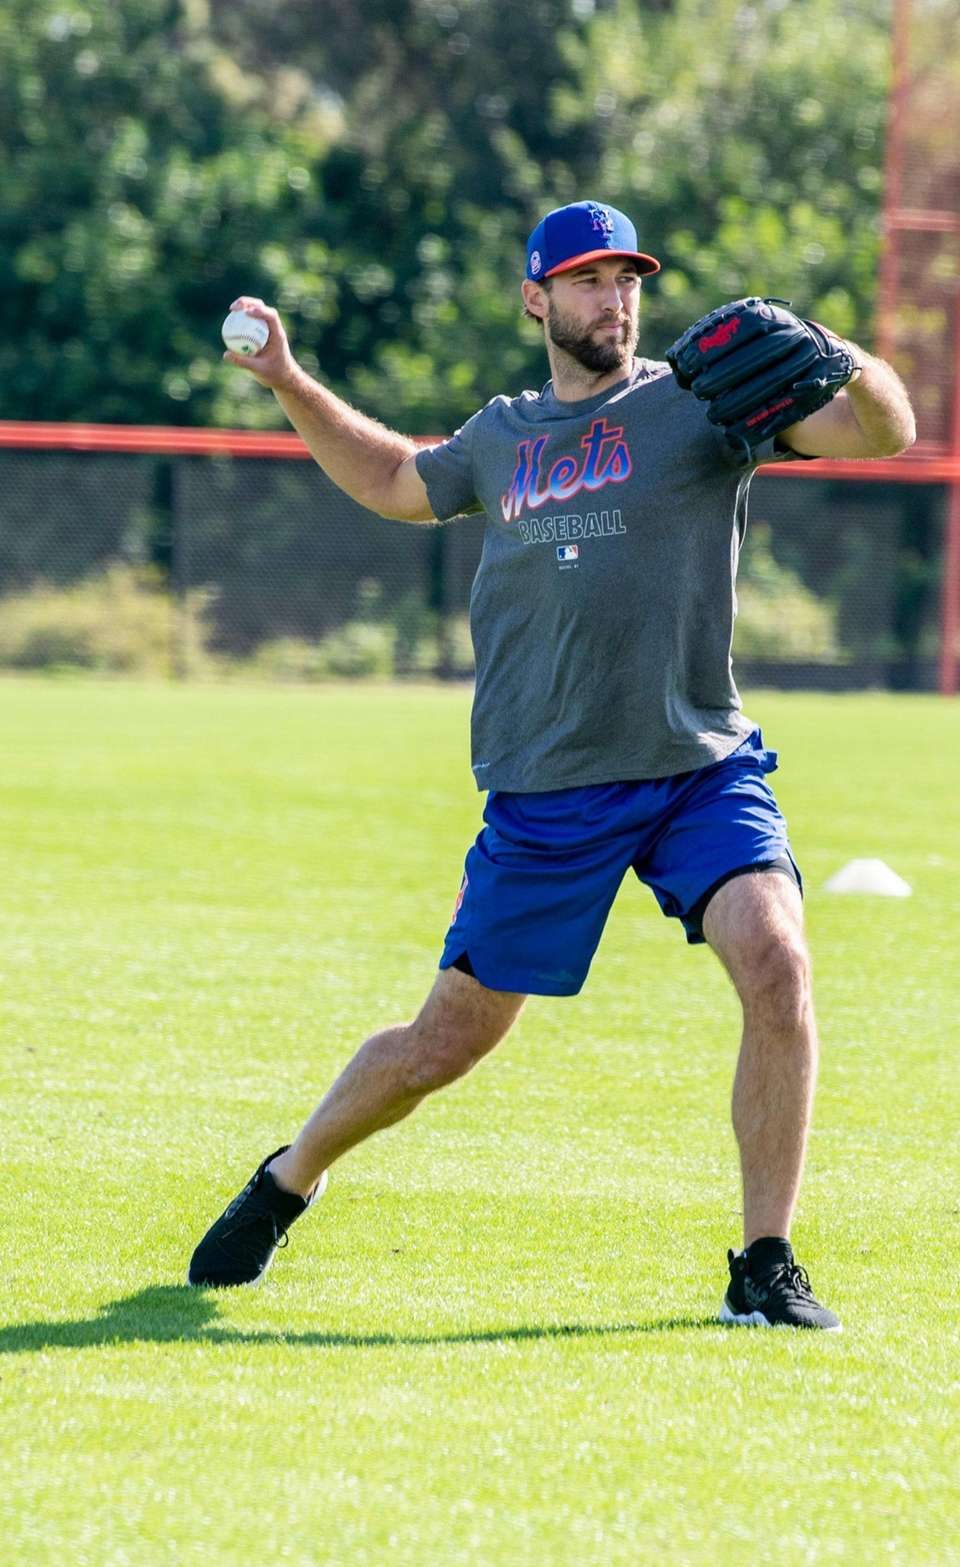 NY Mets pitcher Michael Wacha throws at Clover